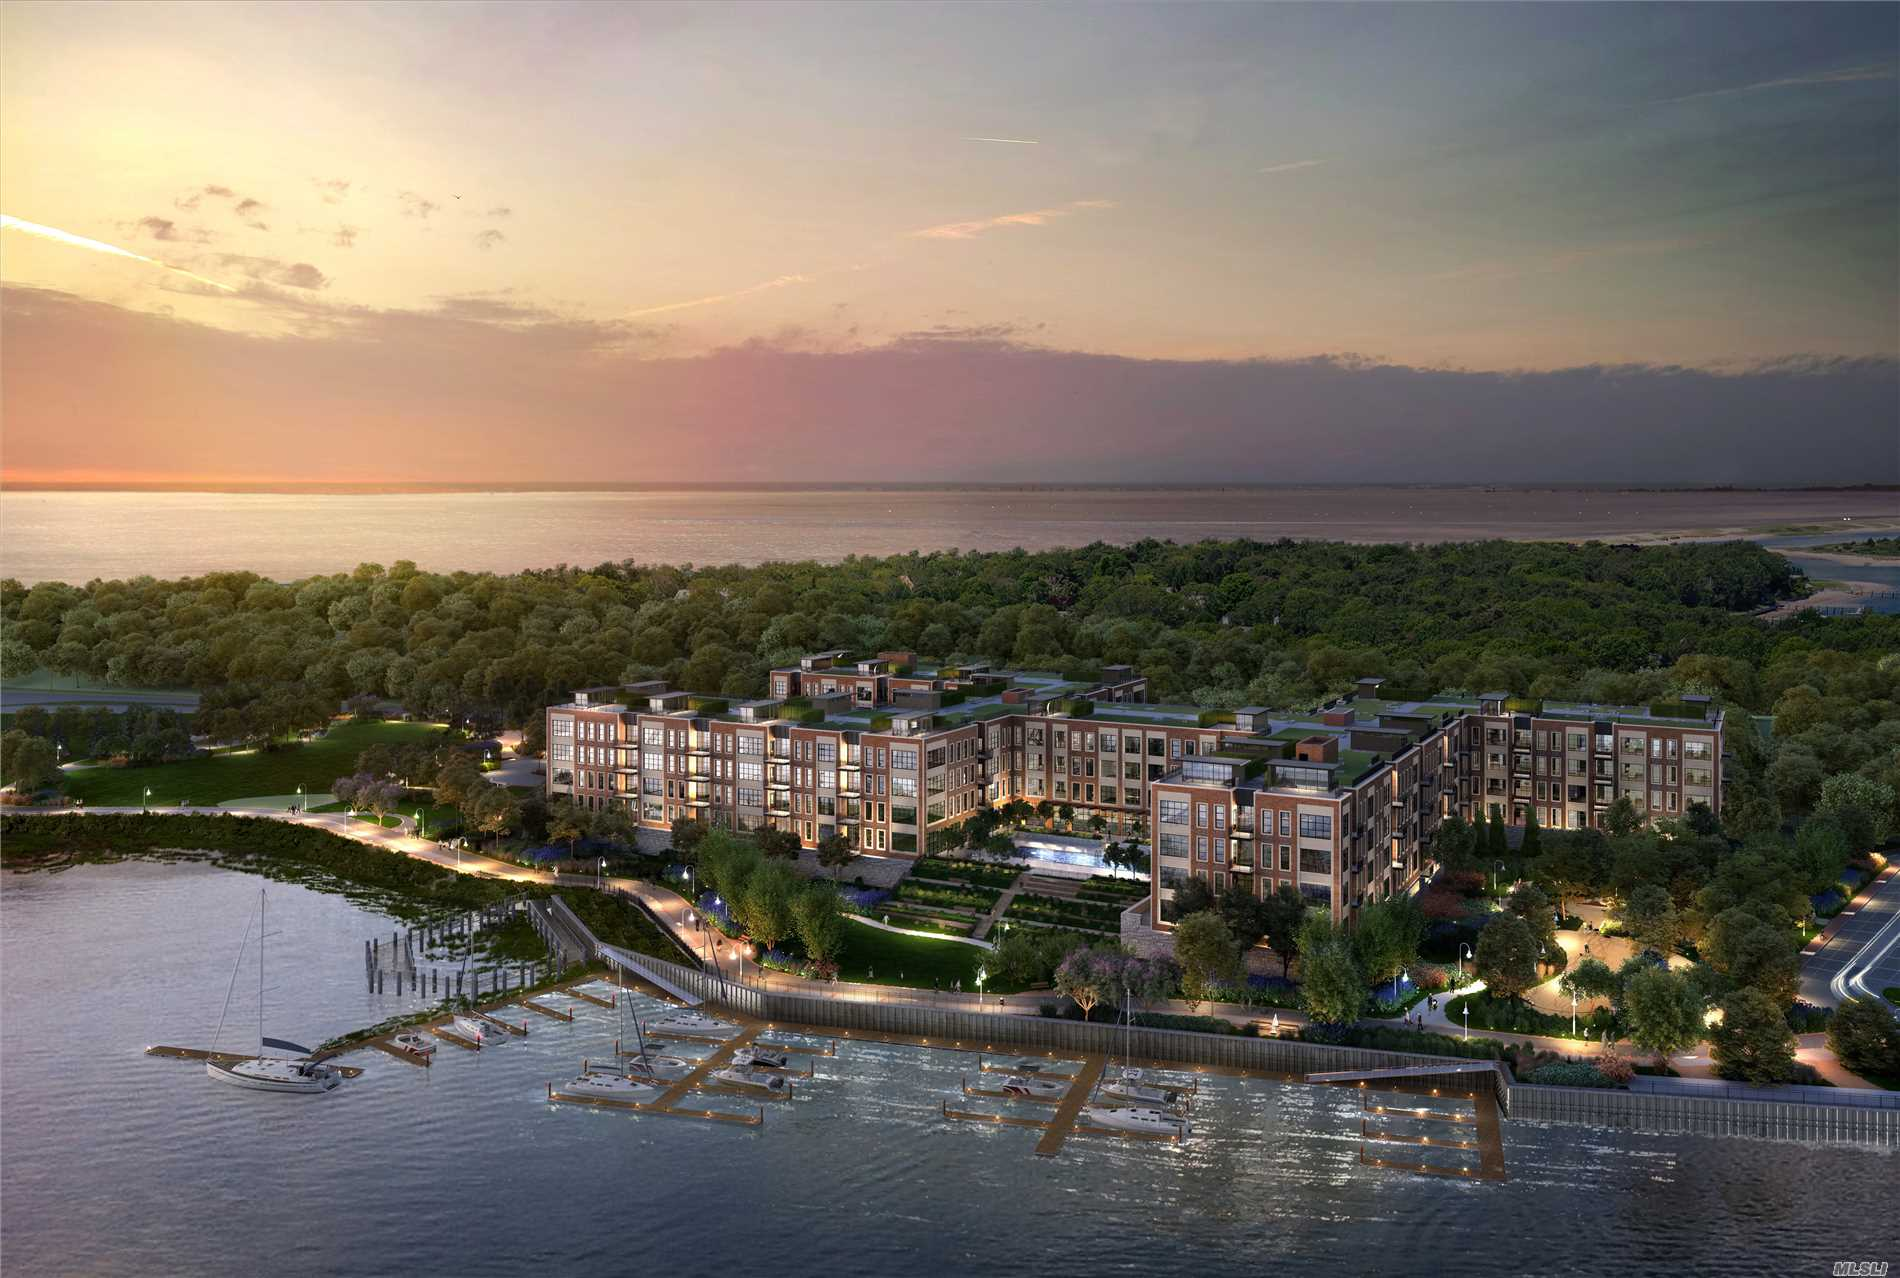 Property for sale at 100 Garvies Point Road # 1210, Glen Cove NY 11542, Glen Cove,  New York 11542